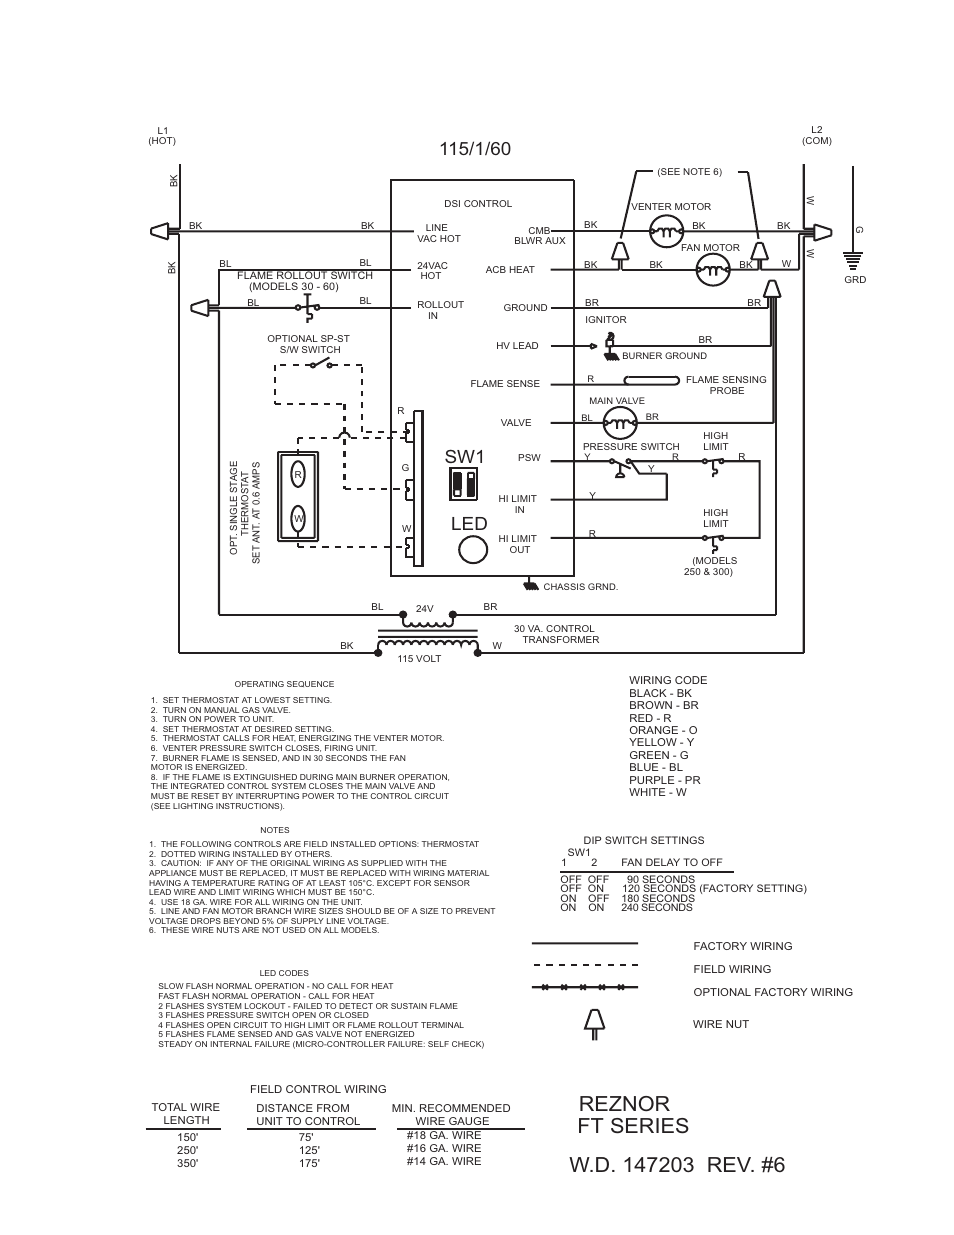 reznor ft unit installation manual page13 reznor furnace wiring diagram reznor wiring schematic oil pump olsen furnace wiring diagram at readyjetset.co